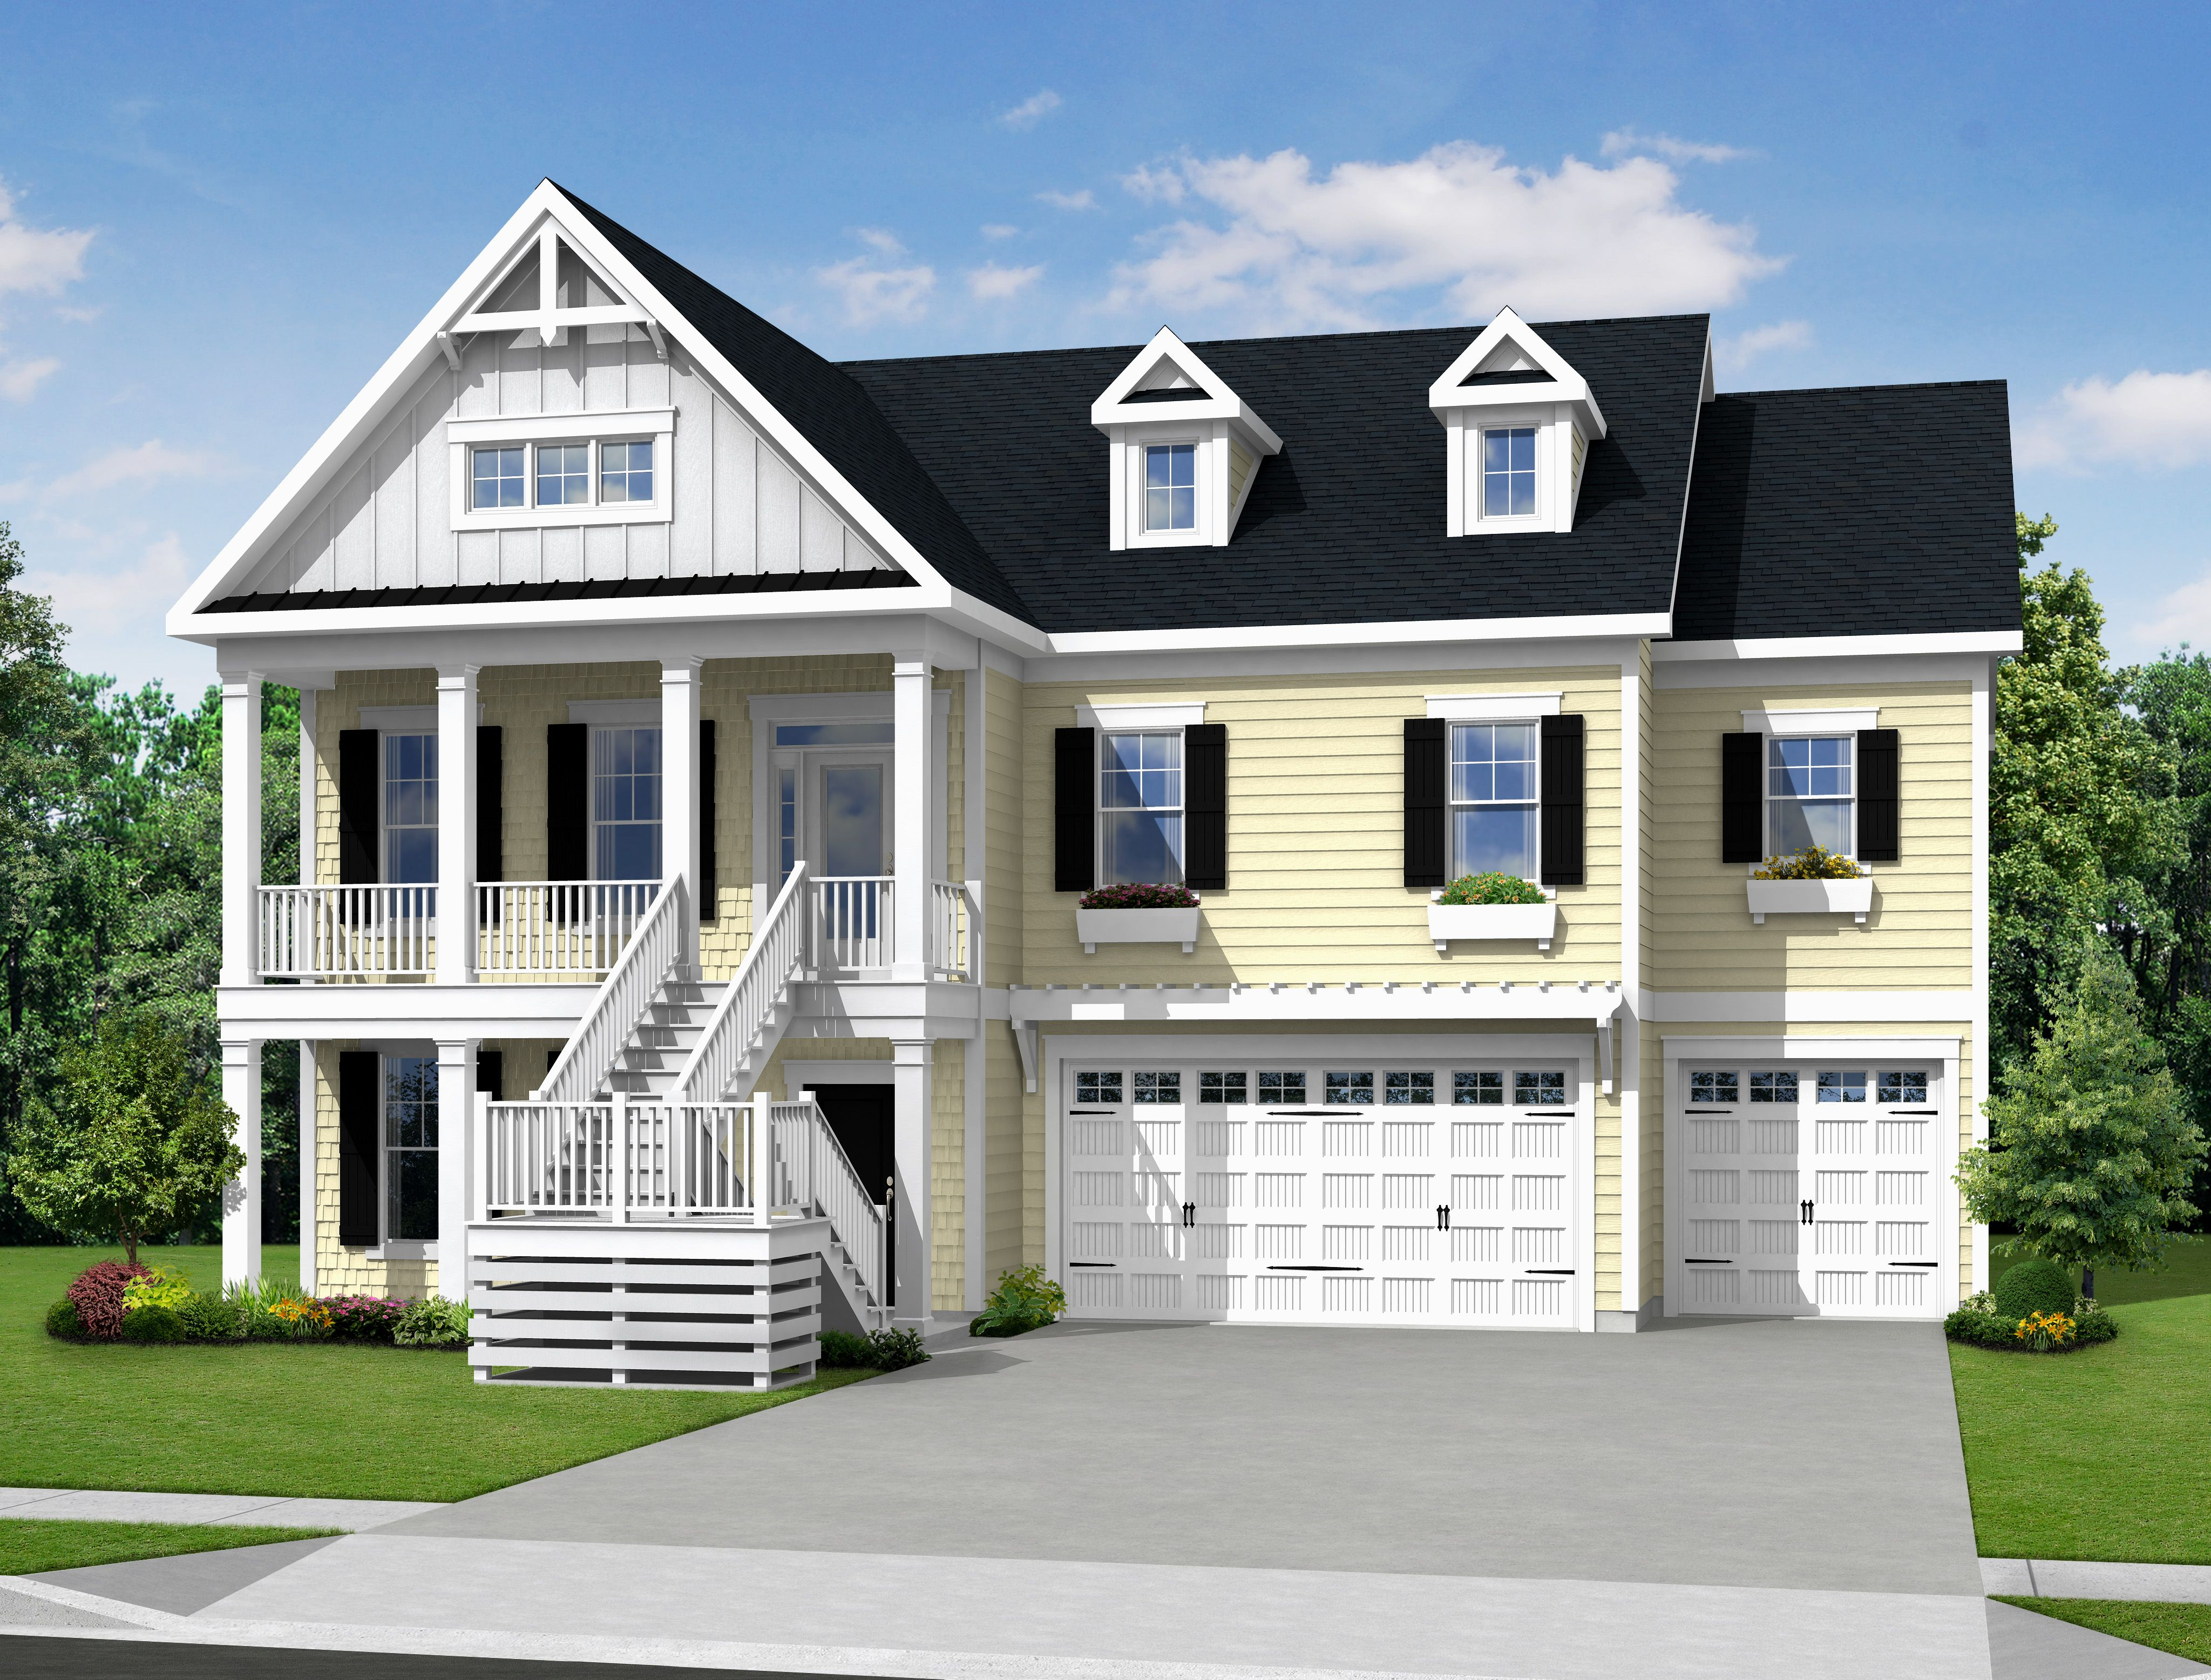 Single Family for Active at Bayside - The Sanibel 20811 Harbor Cove Selbyville, Delaware 19975 United States